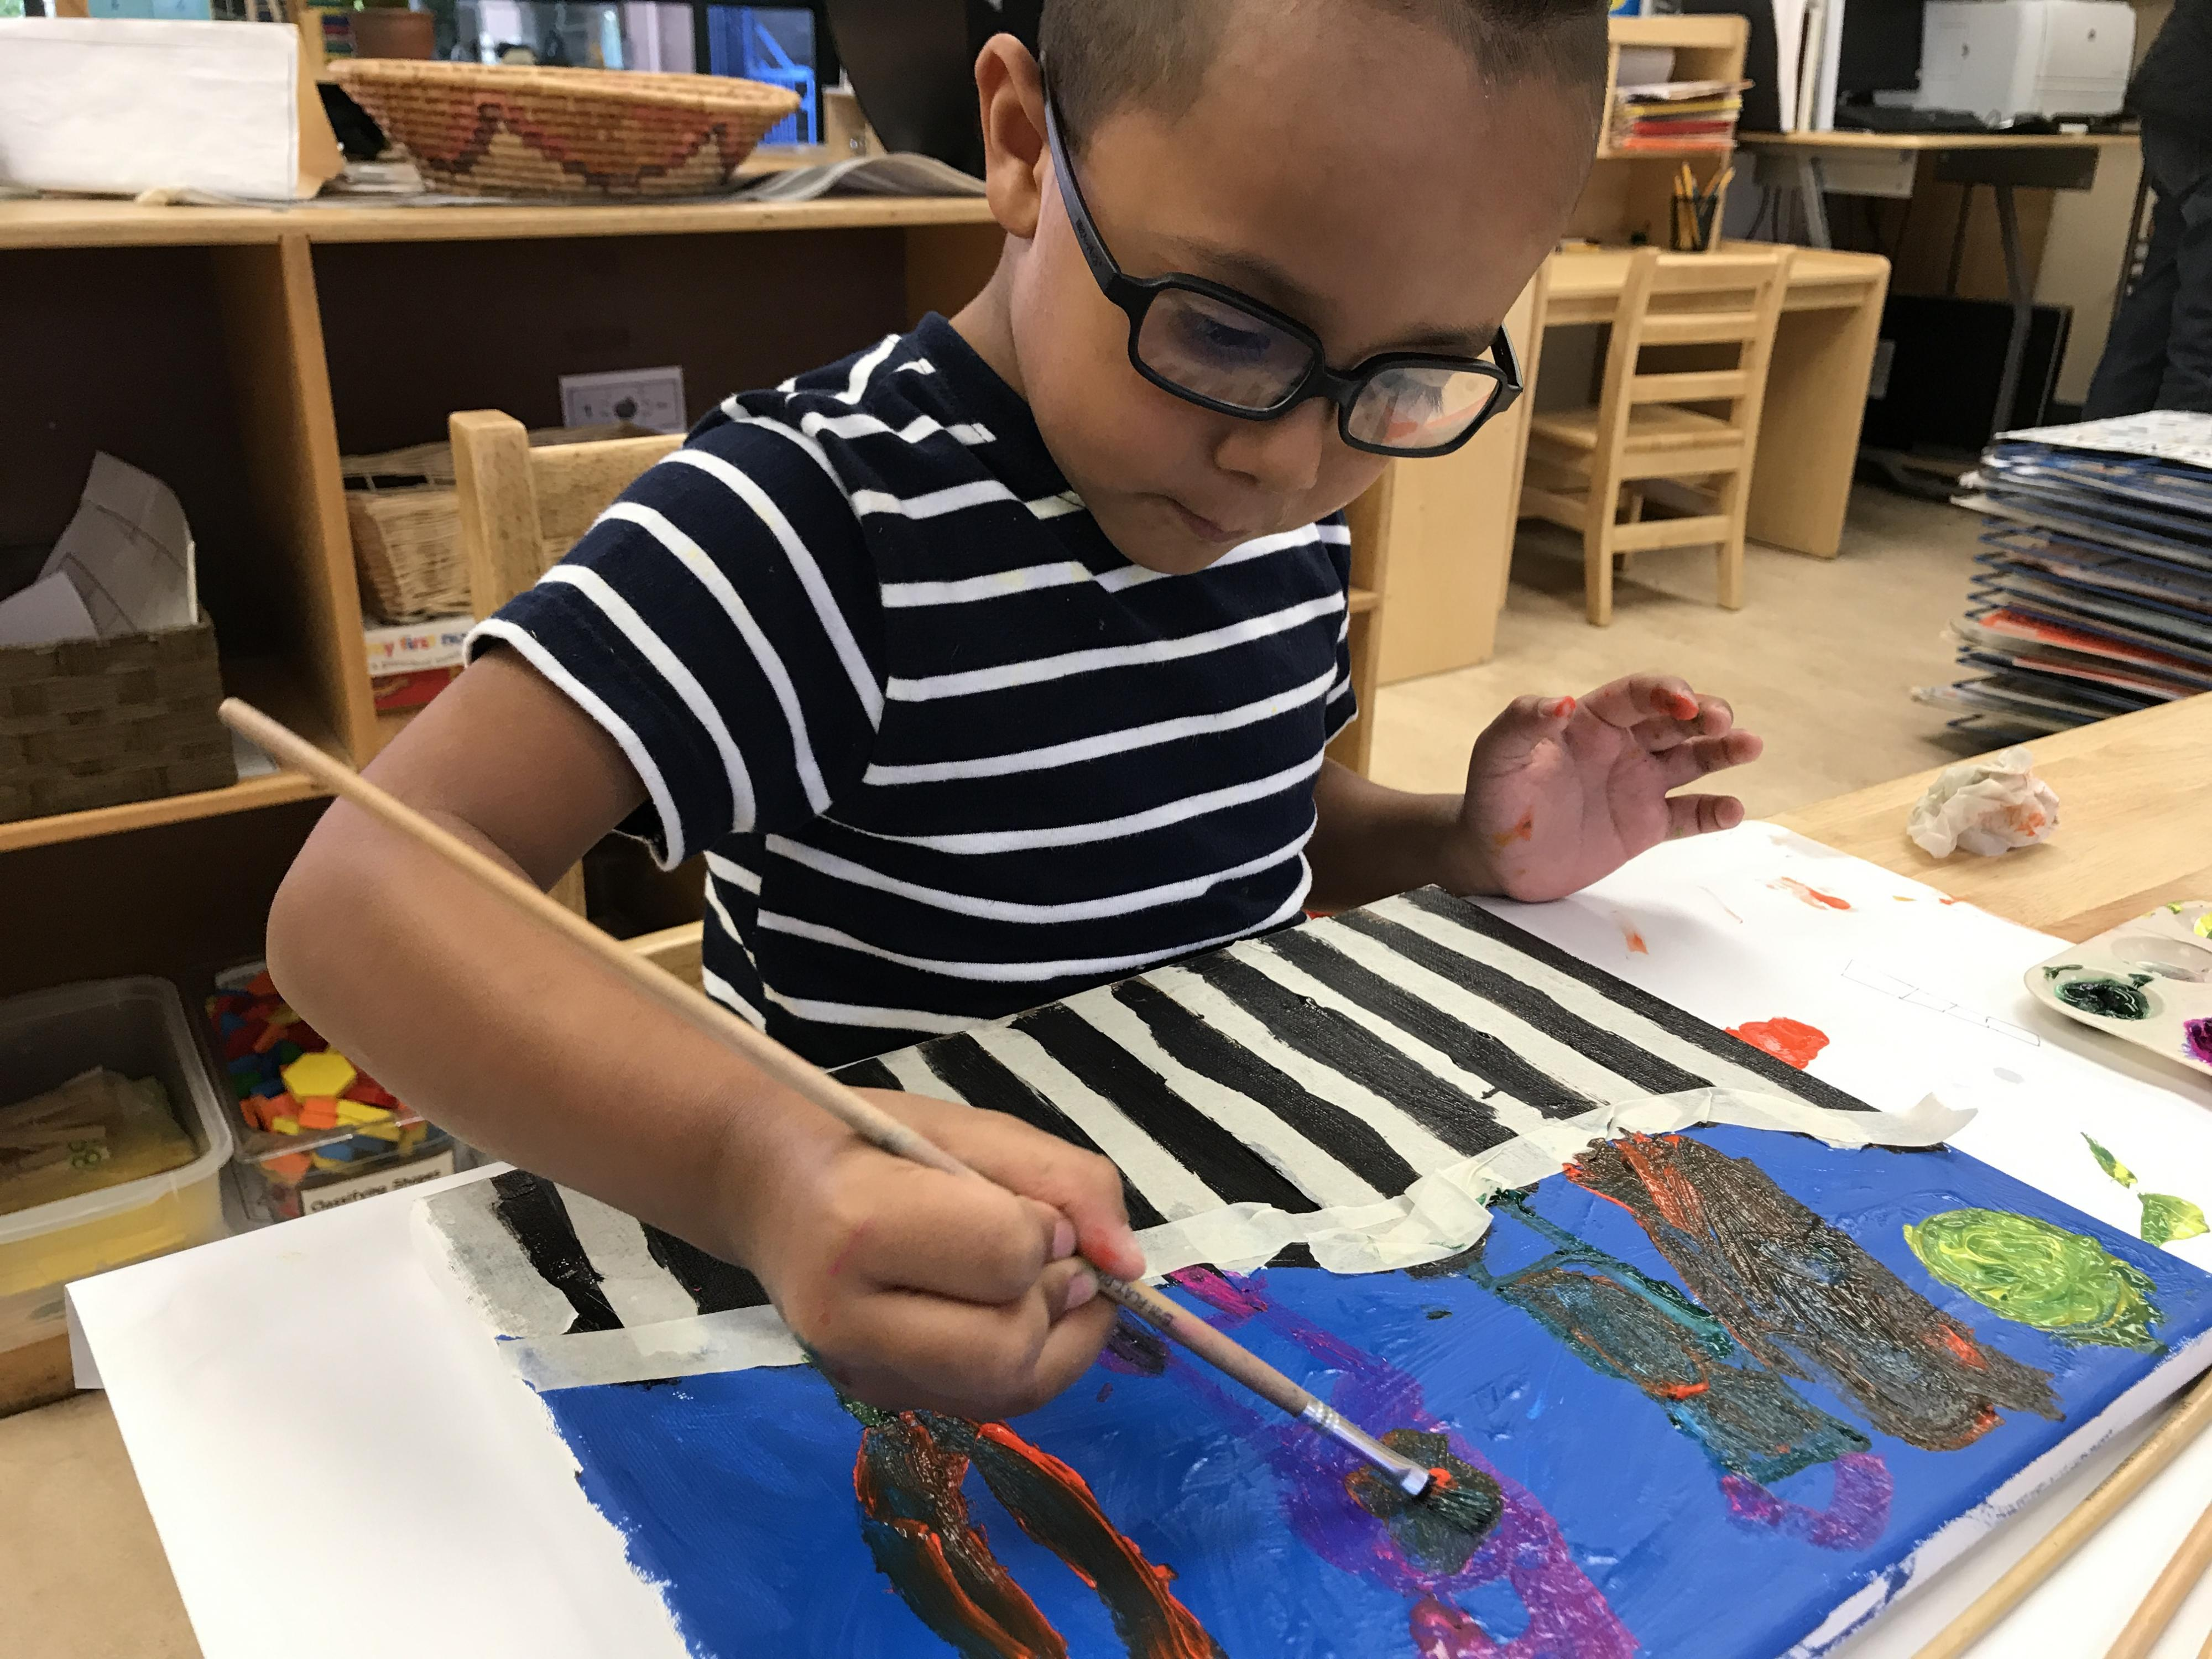 Zahid uses paint to represent the word frontera.